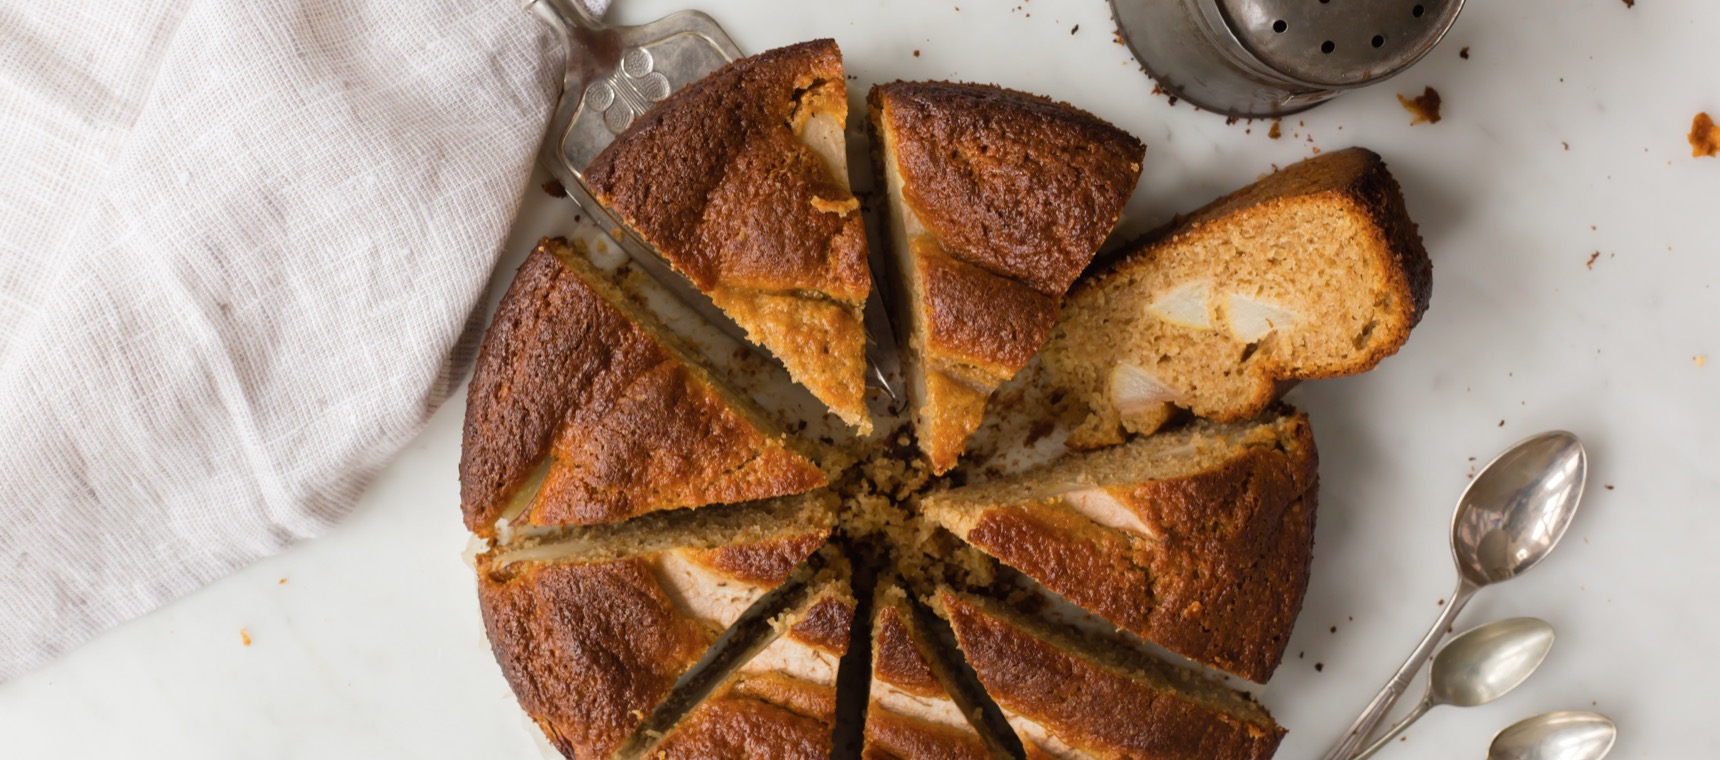 Pear and Olive Oil Cake